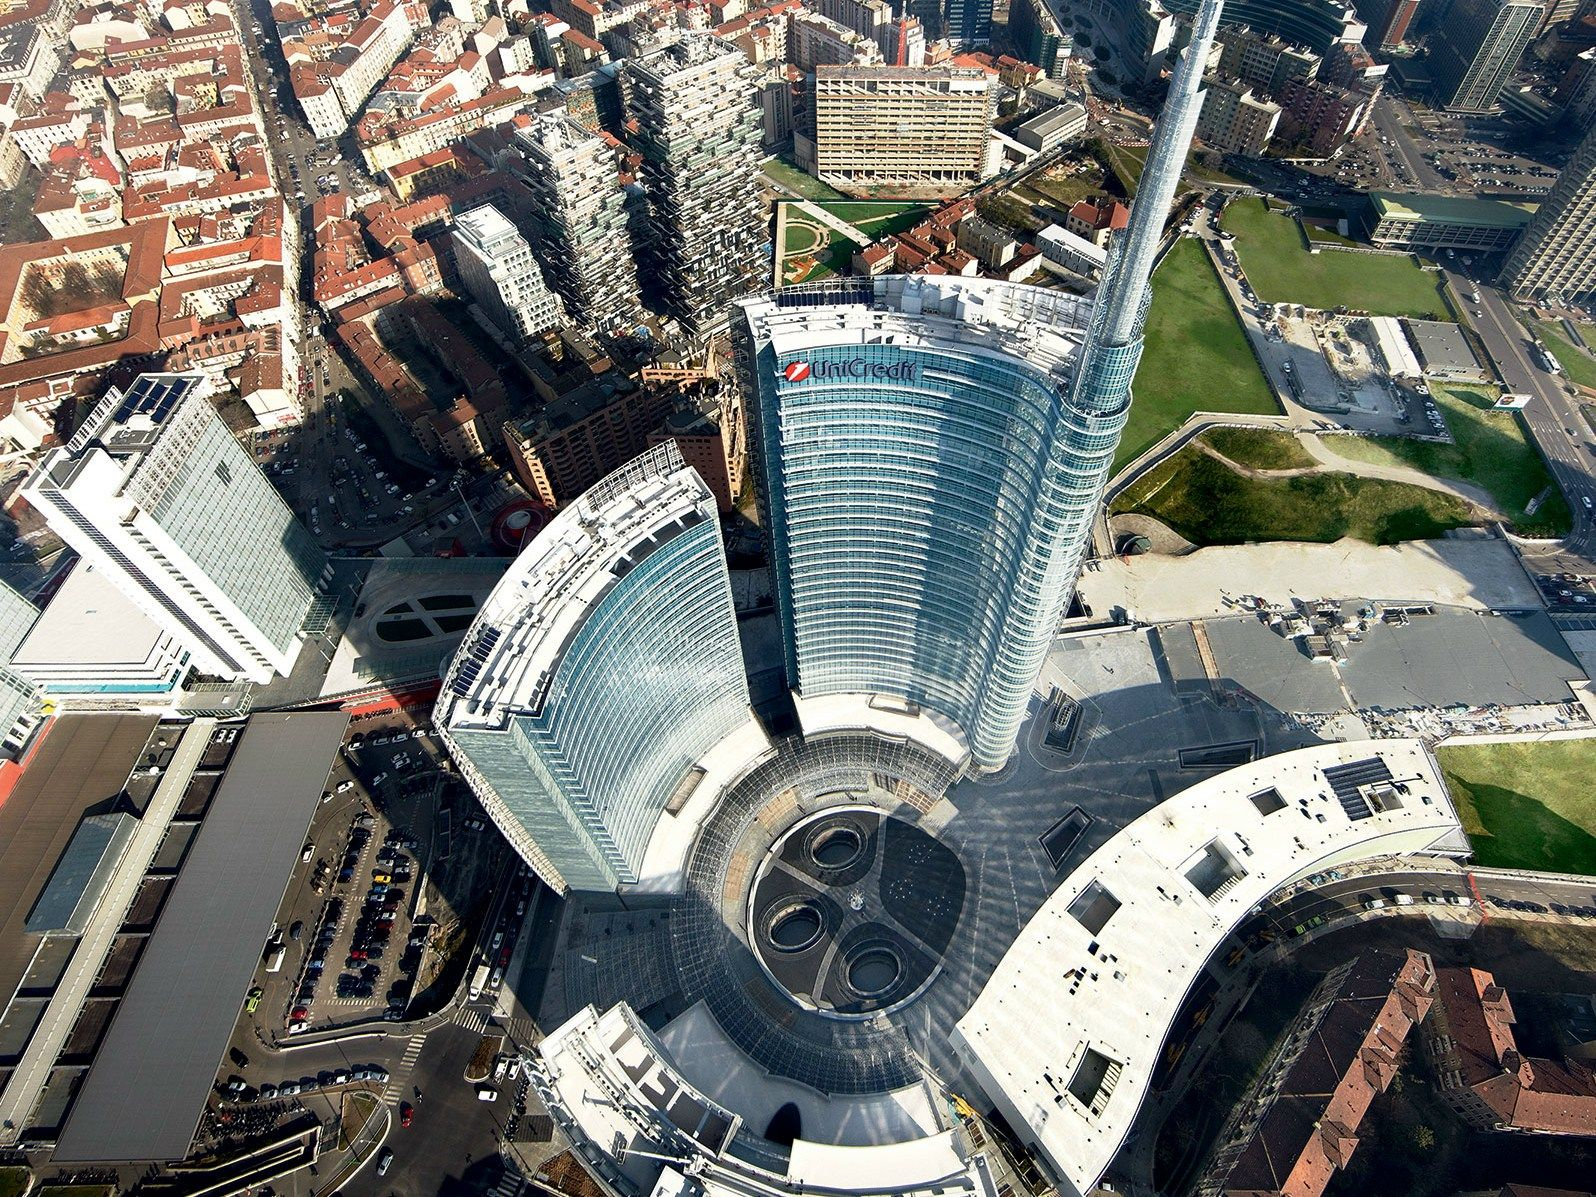 UniCredit lancia il concorso fotografico Pin Tower